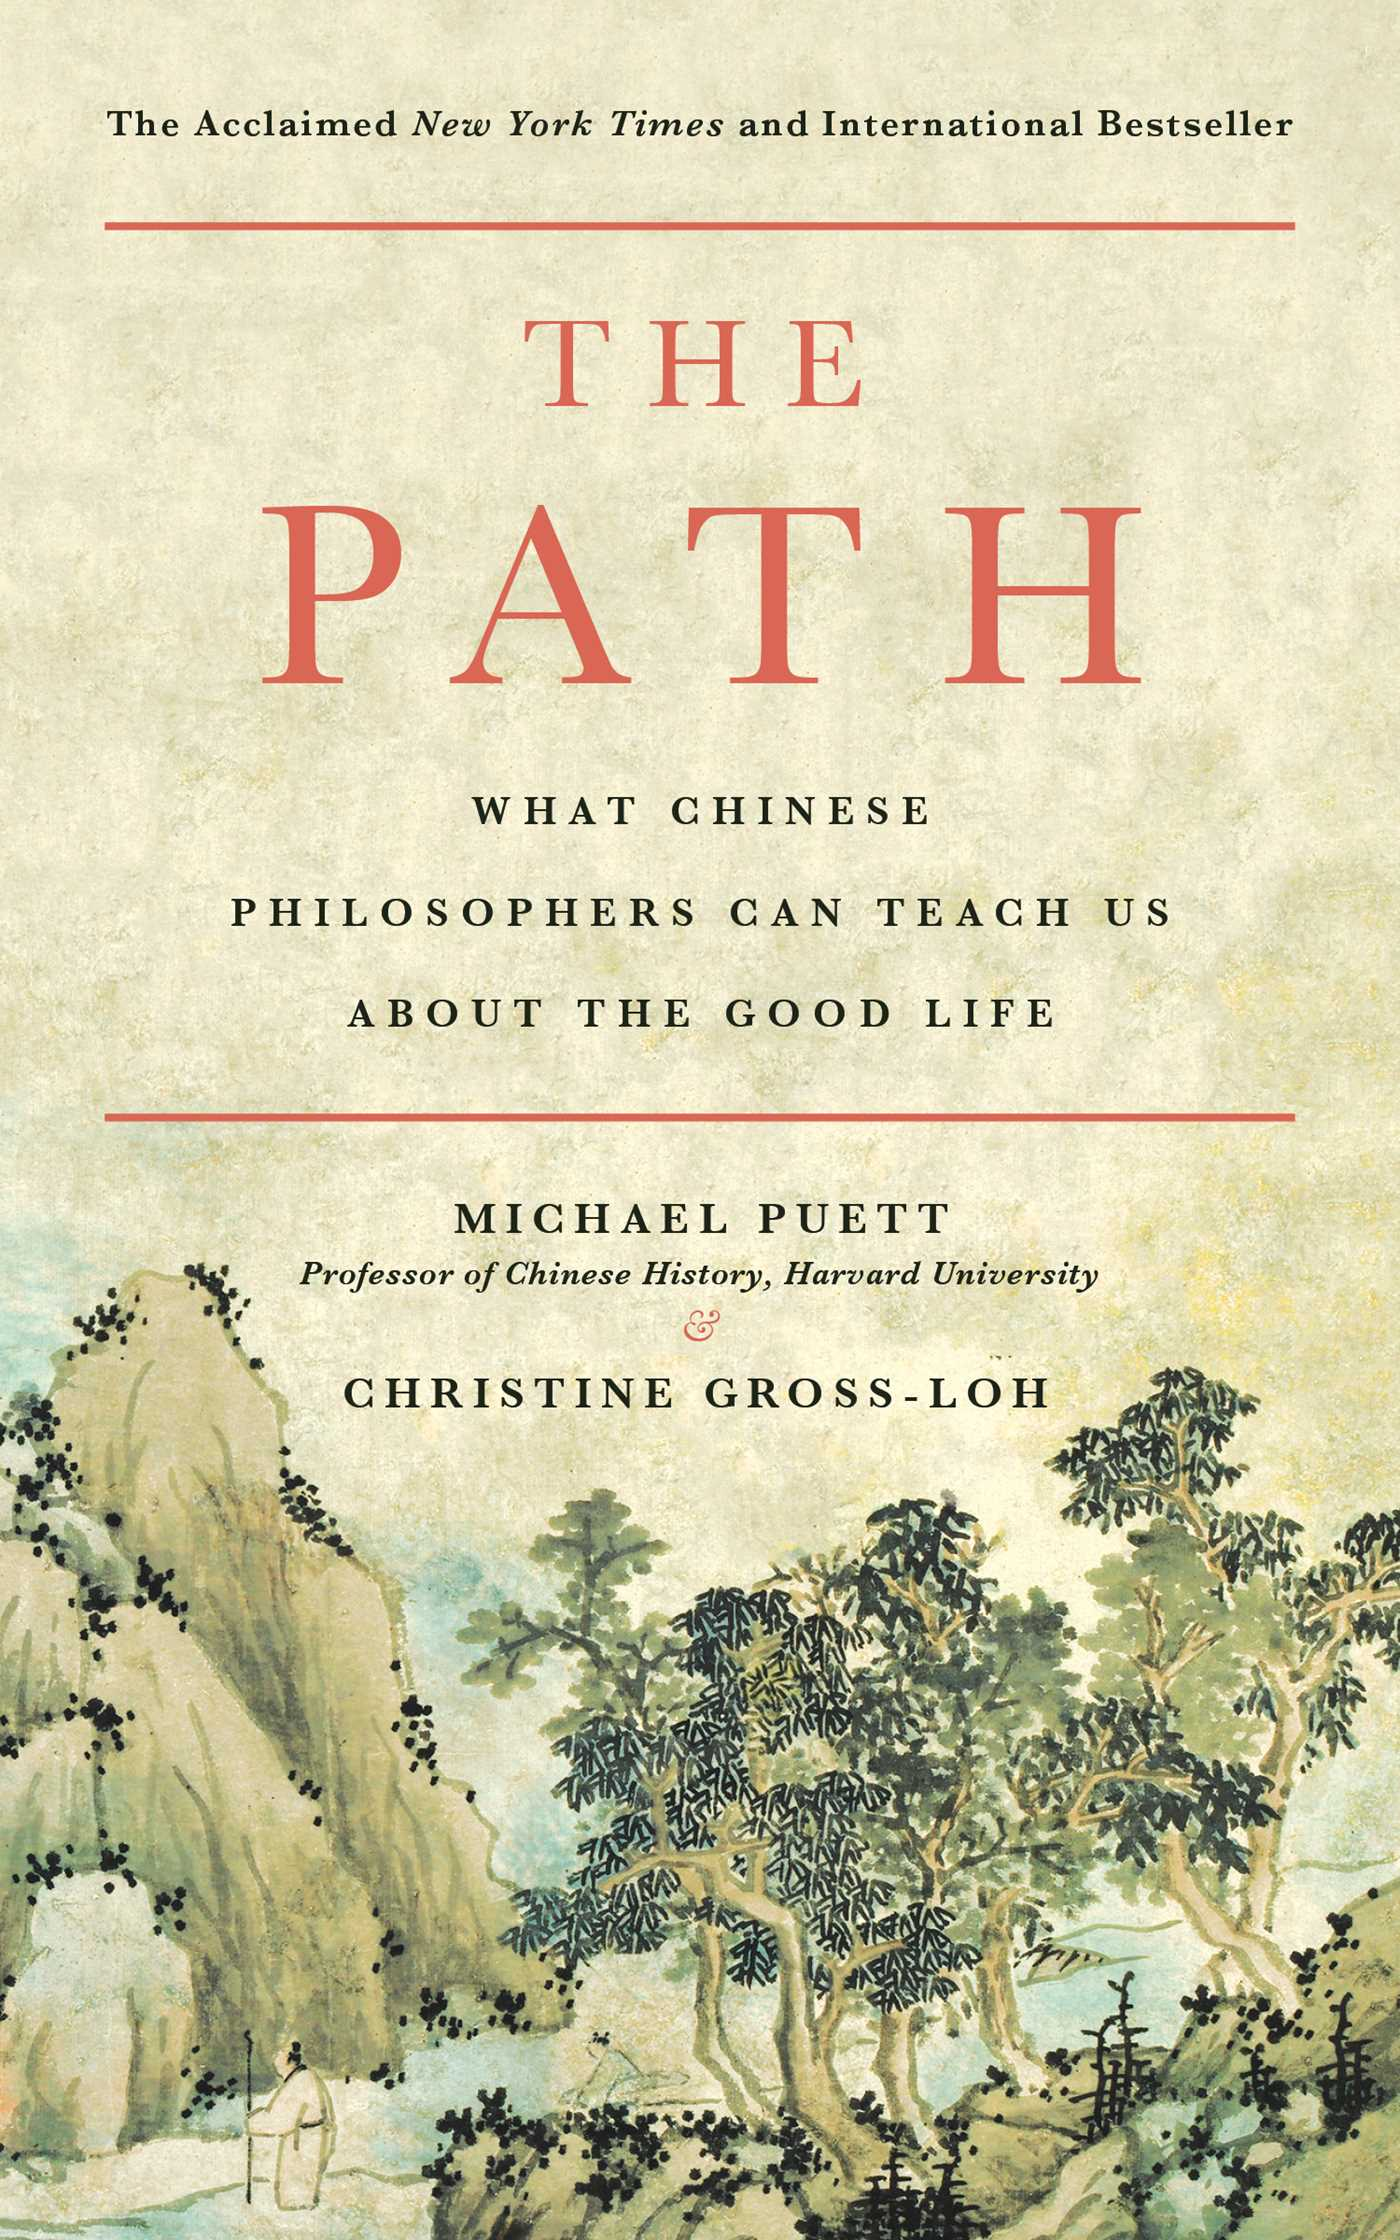 The path ebook by michael puett christine gross loh official what chinese philosophers can teach us about the good life fandeluxe Gallery